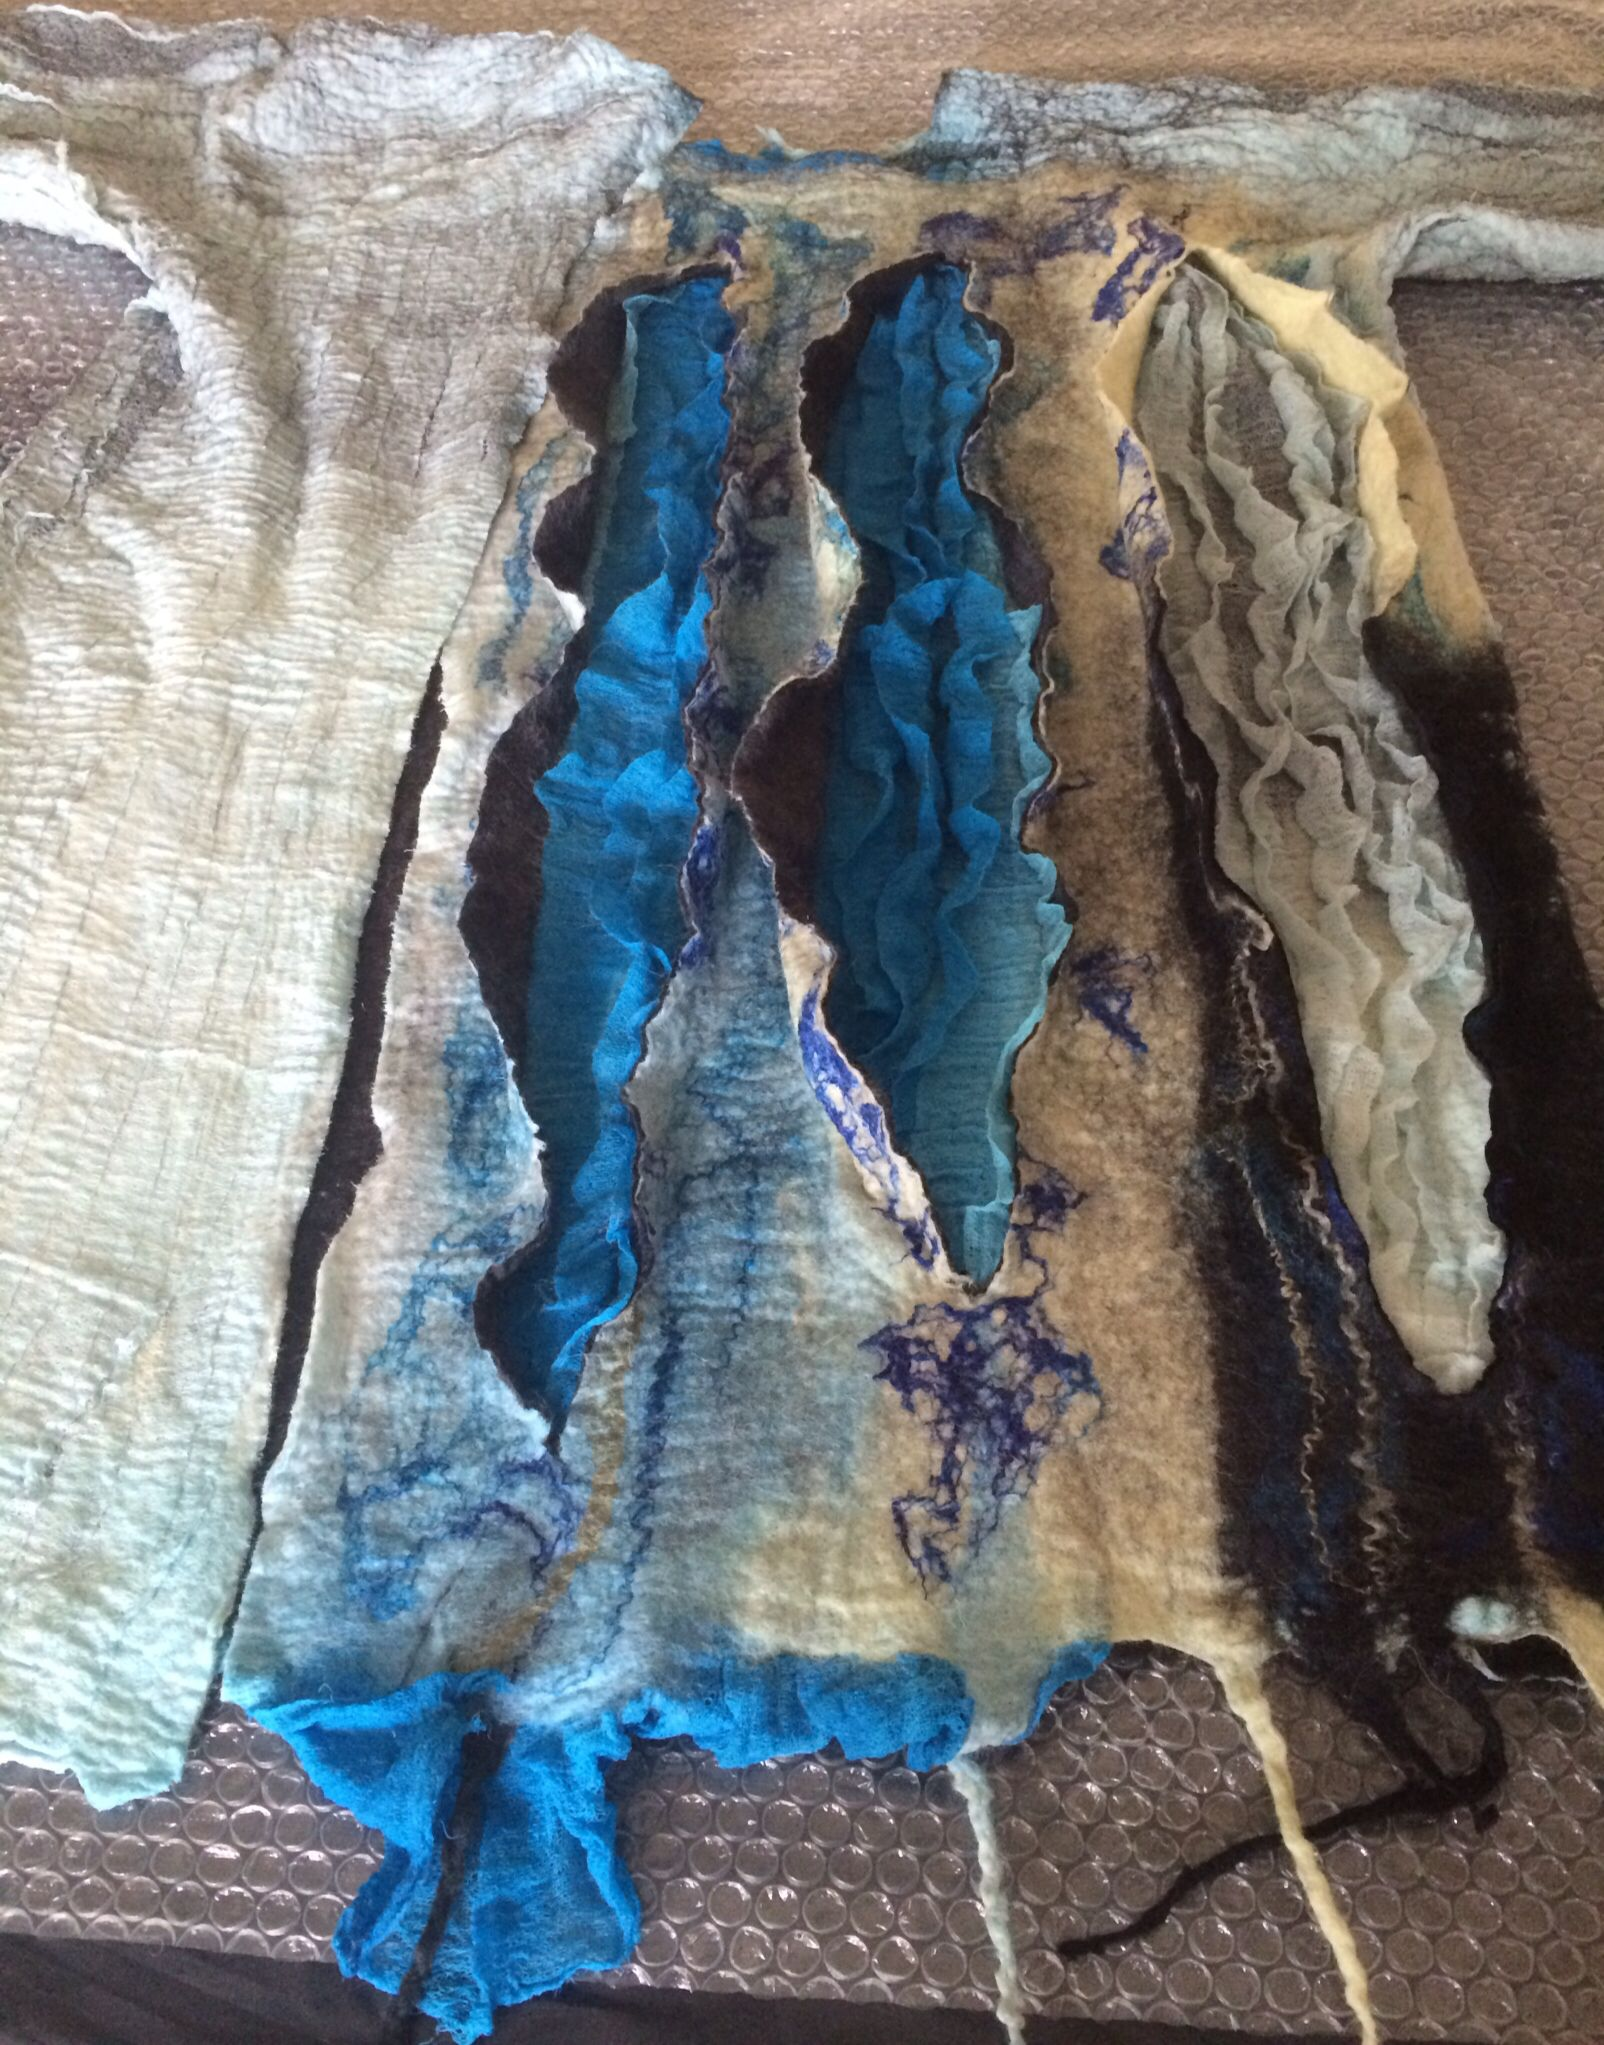 Blue felted vest with 3D decor by Nadin Smo design.  www.nadinsmo.com